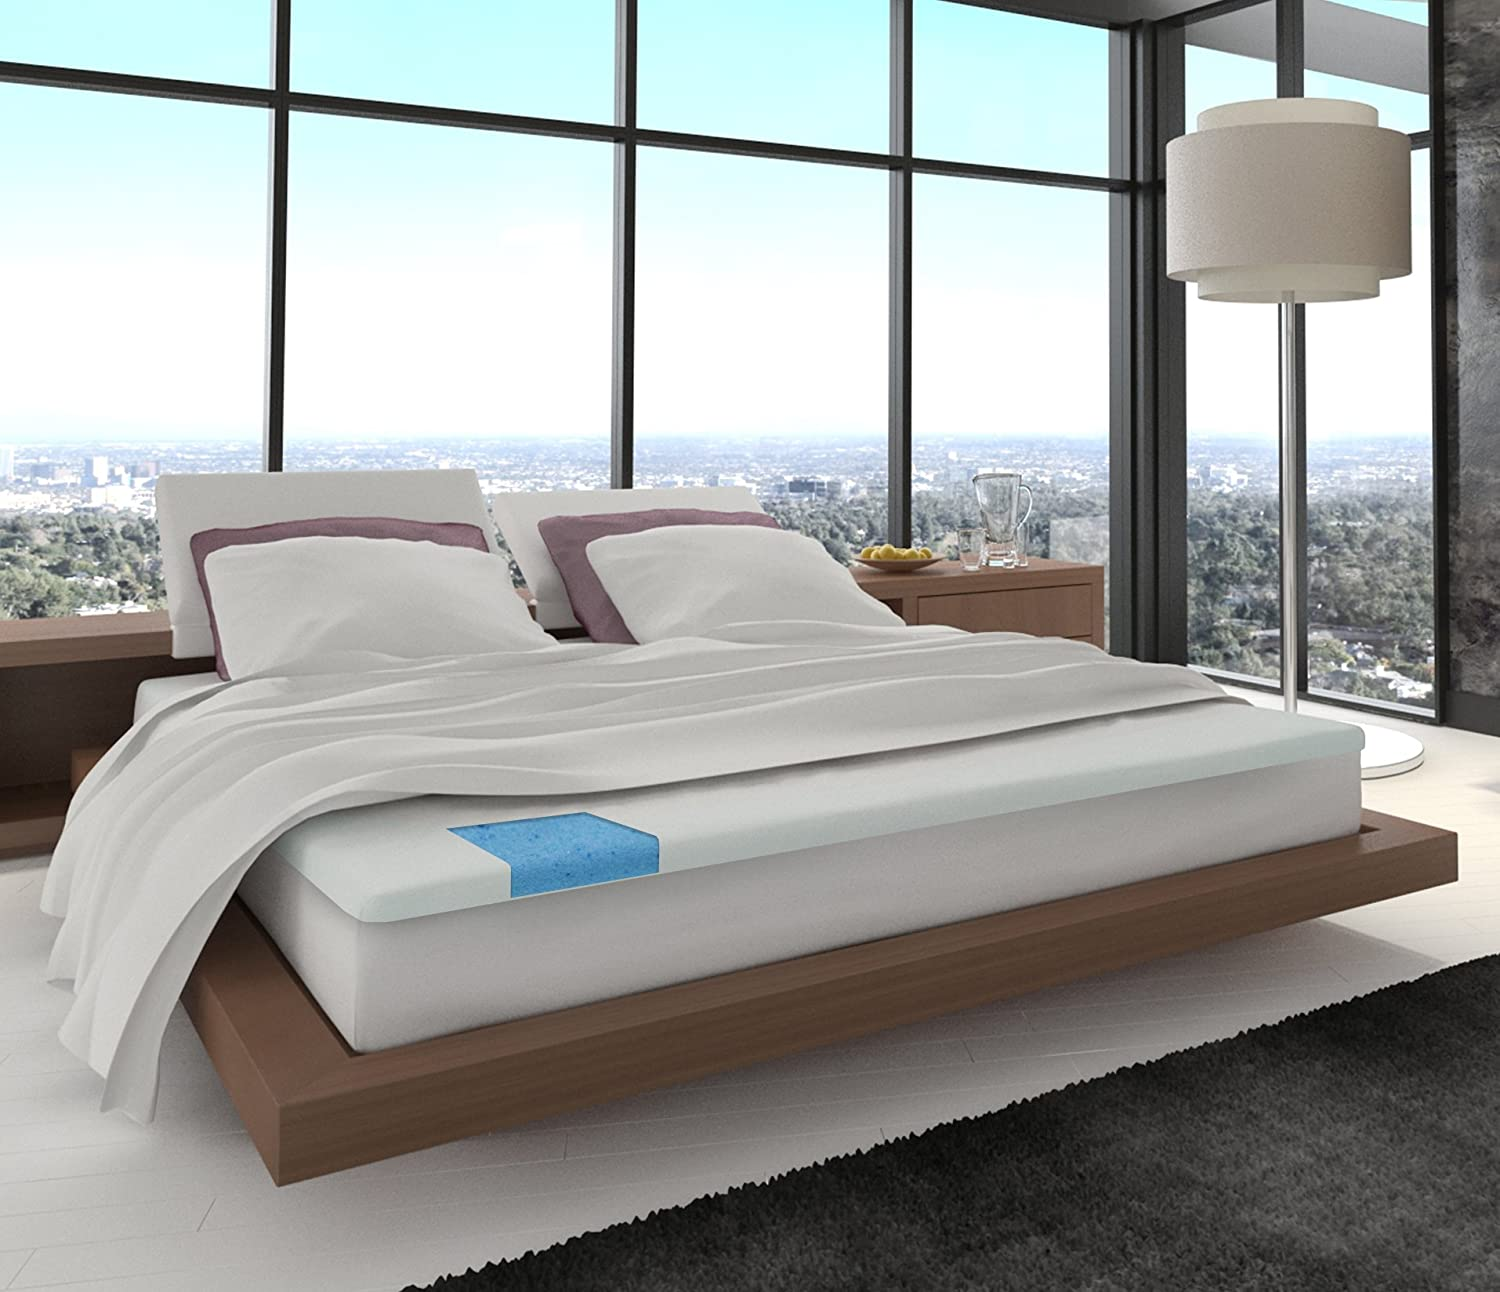 Best Mattress For Herniated Discs How To Escape The Pain